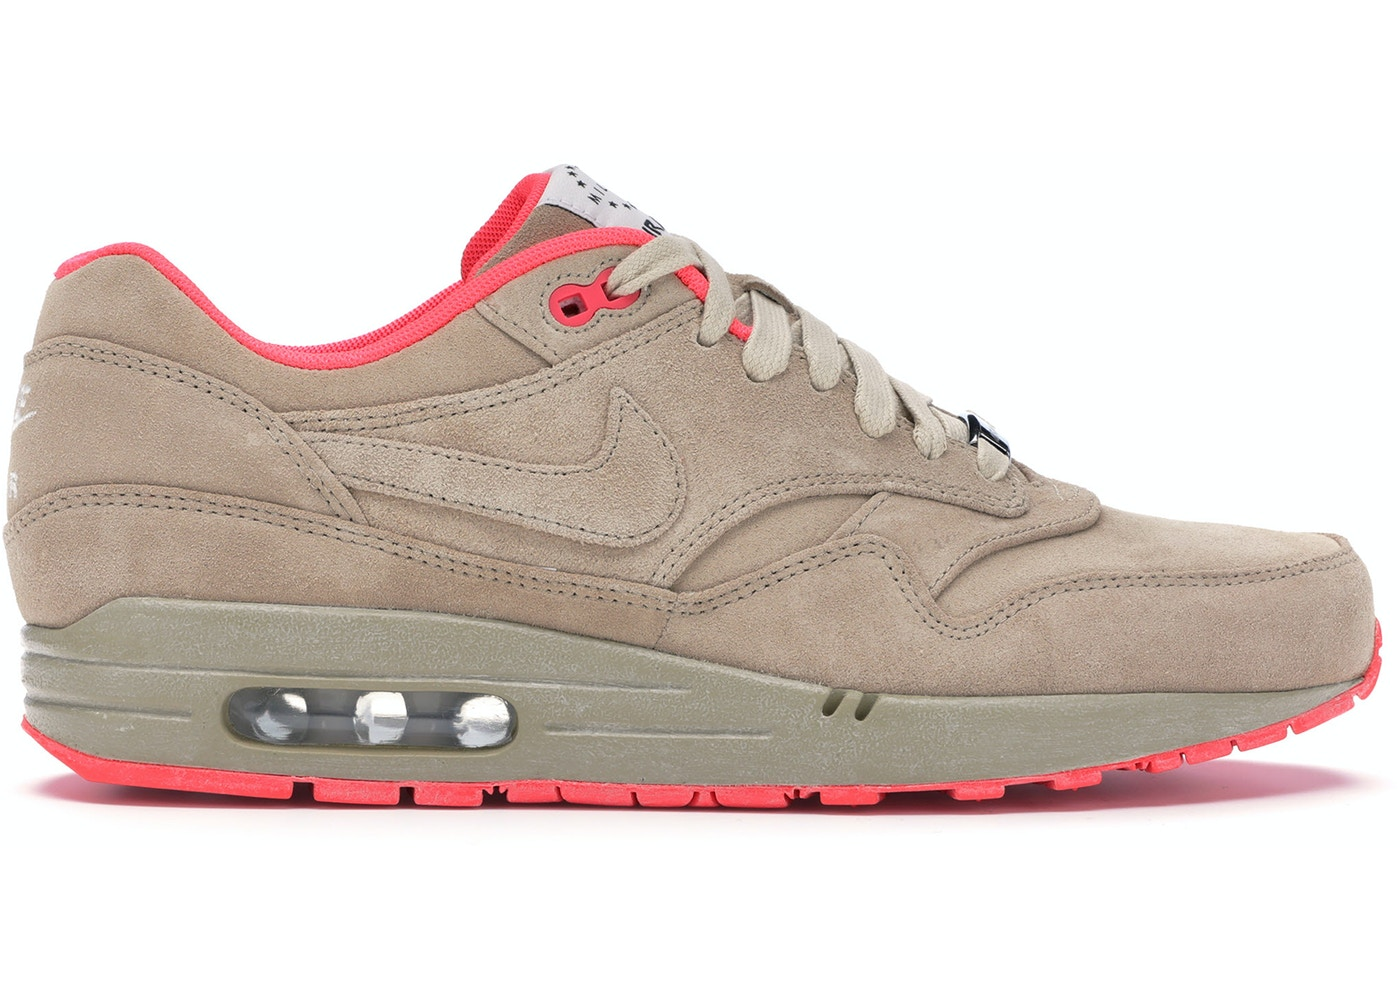 new product ad7b3 dc4db Air Max 1 Home Turf Milan - 587922-226